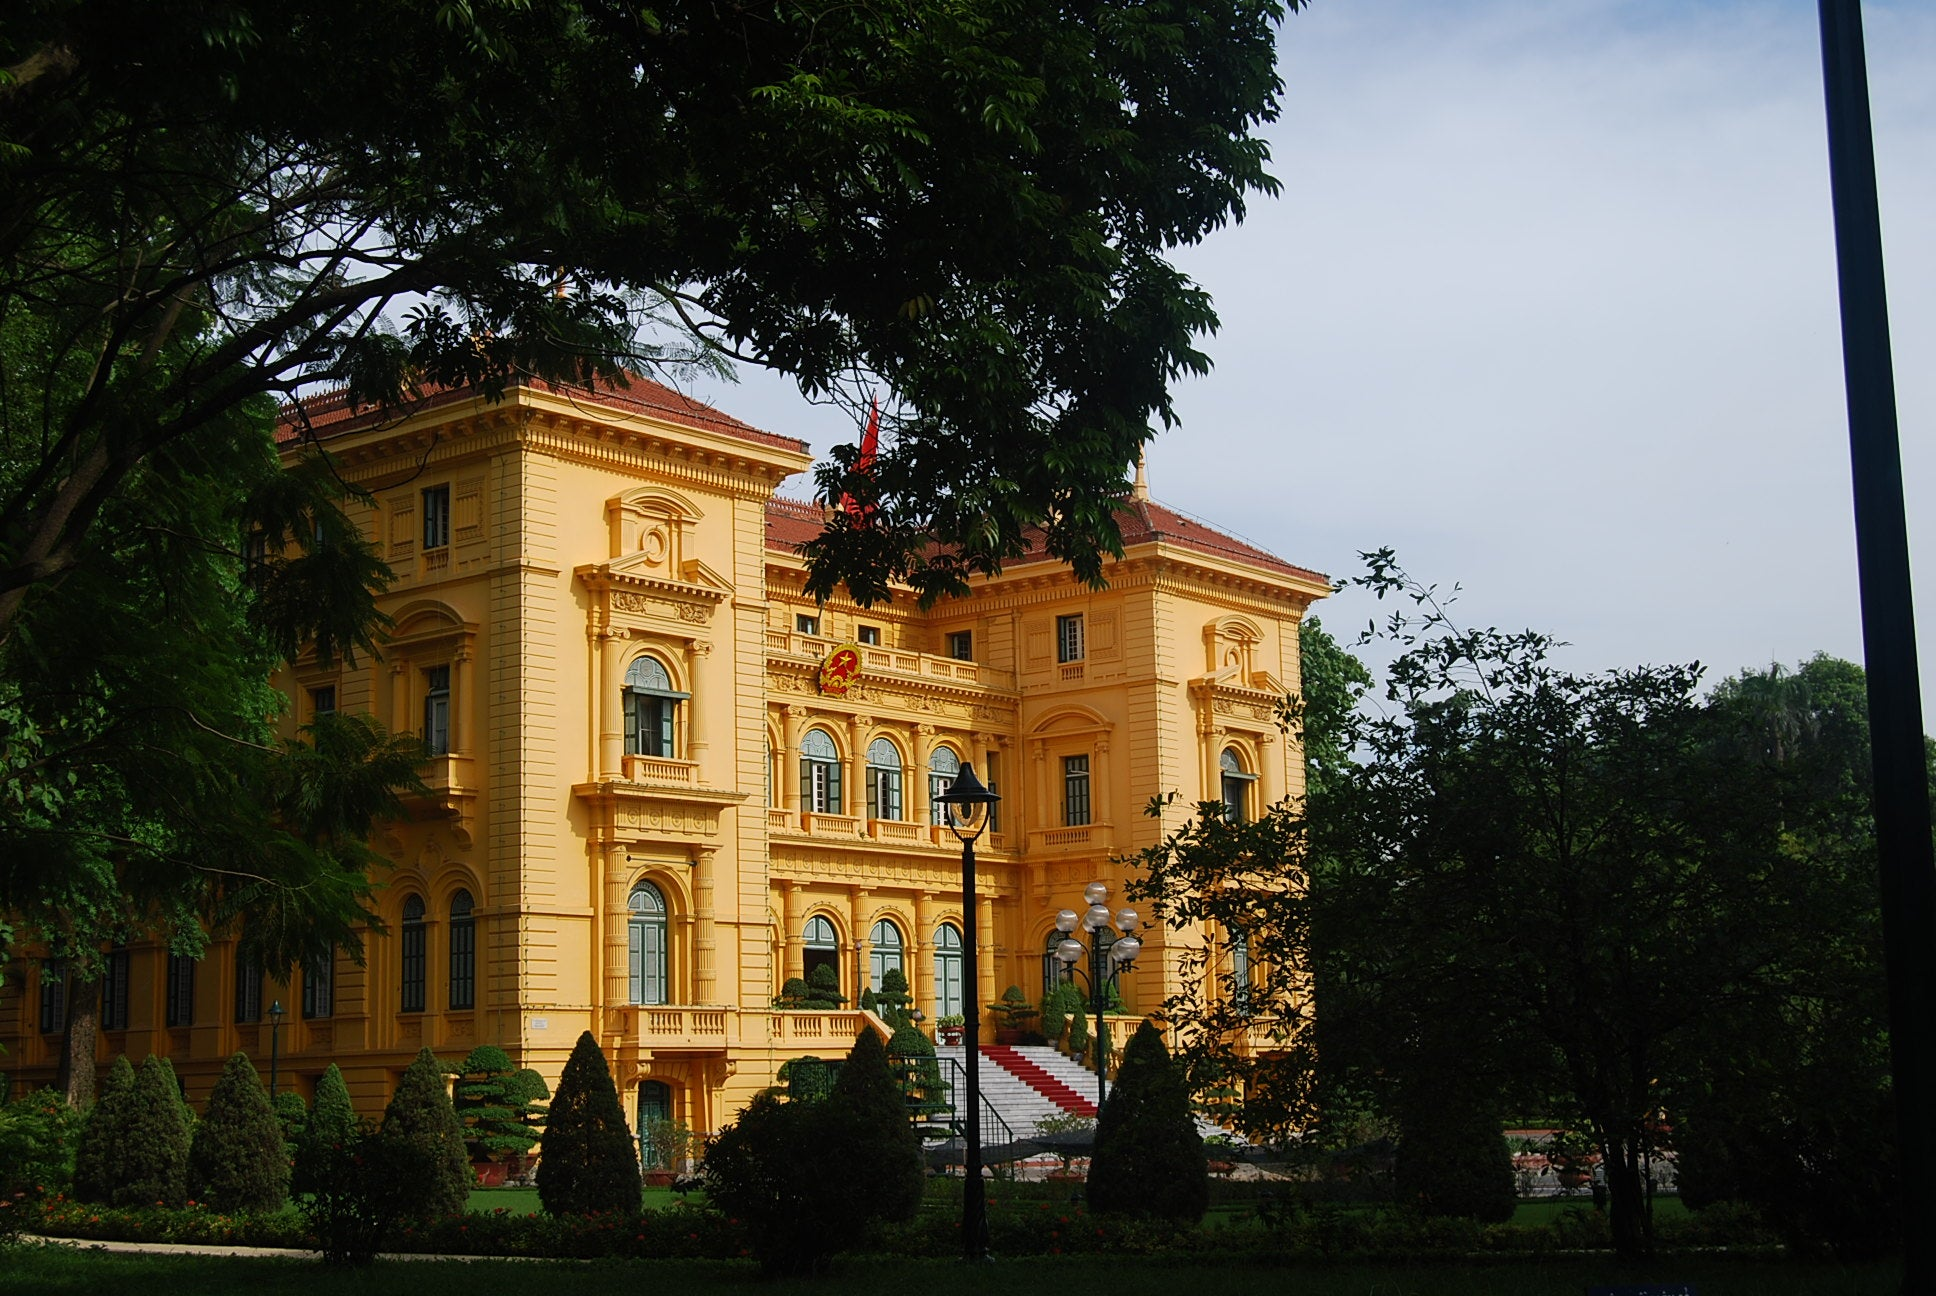 Arquitectura en Presidential Palace